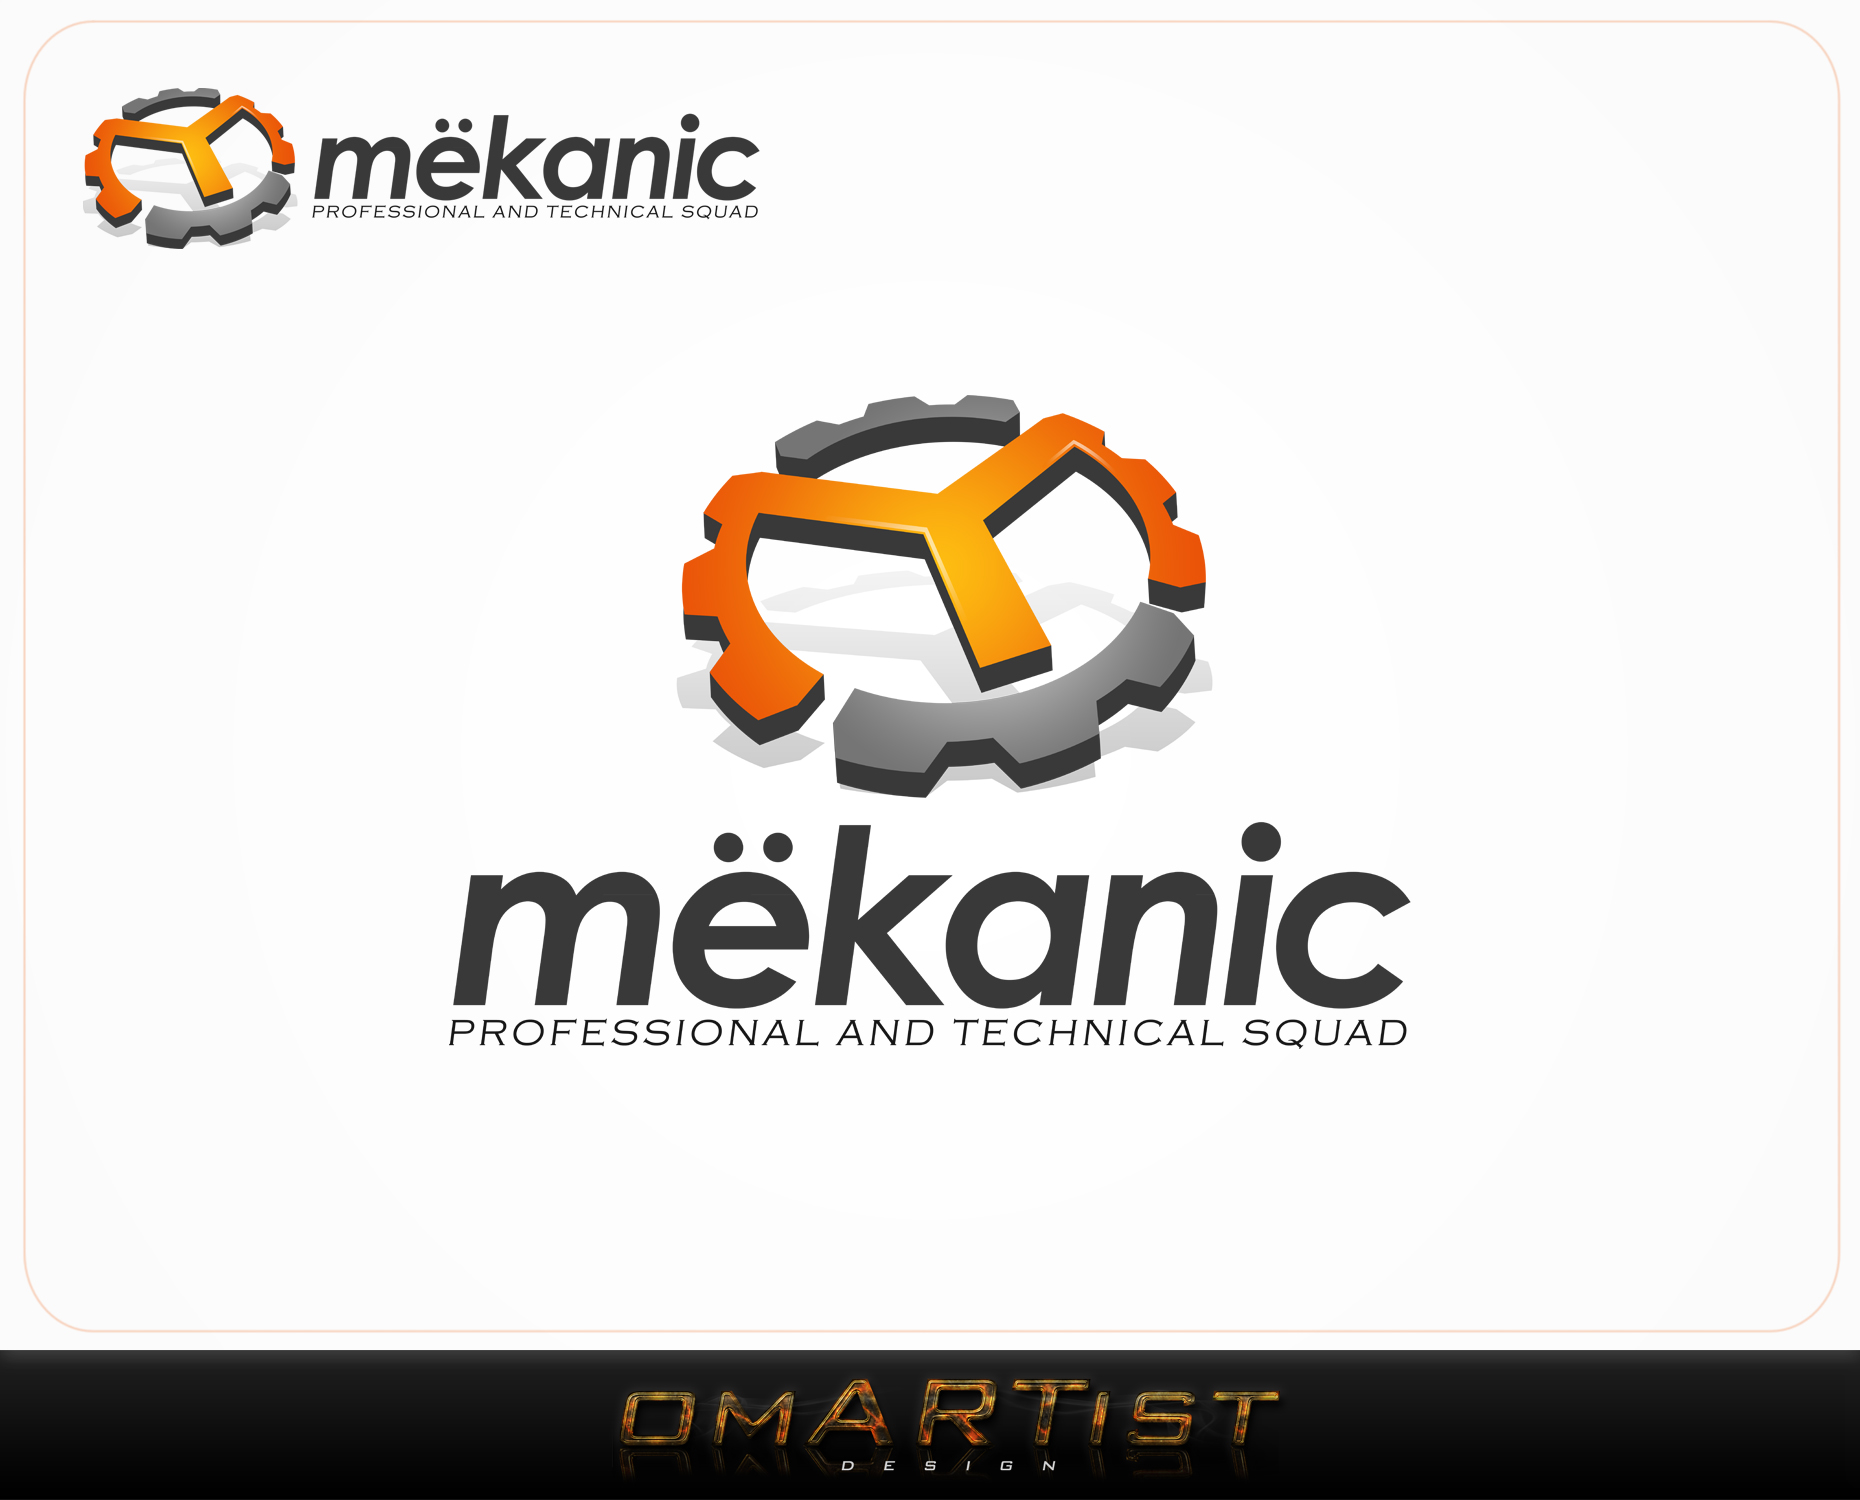 Logo Design by omARTist - Entry No. 86 in the Logo Design Contest Creative Logo Design for MËKANIC - Professional and technical squad.